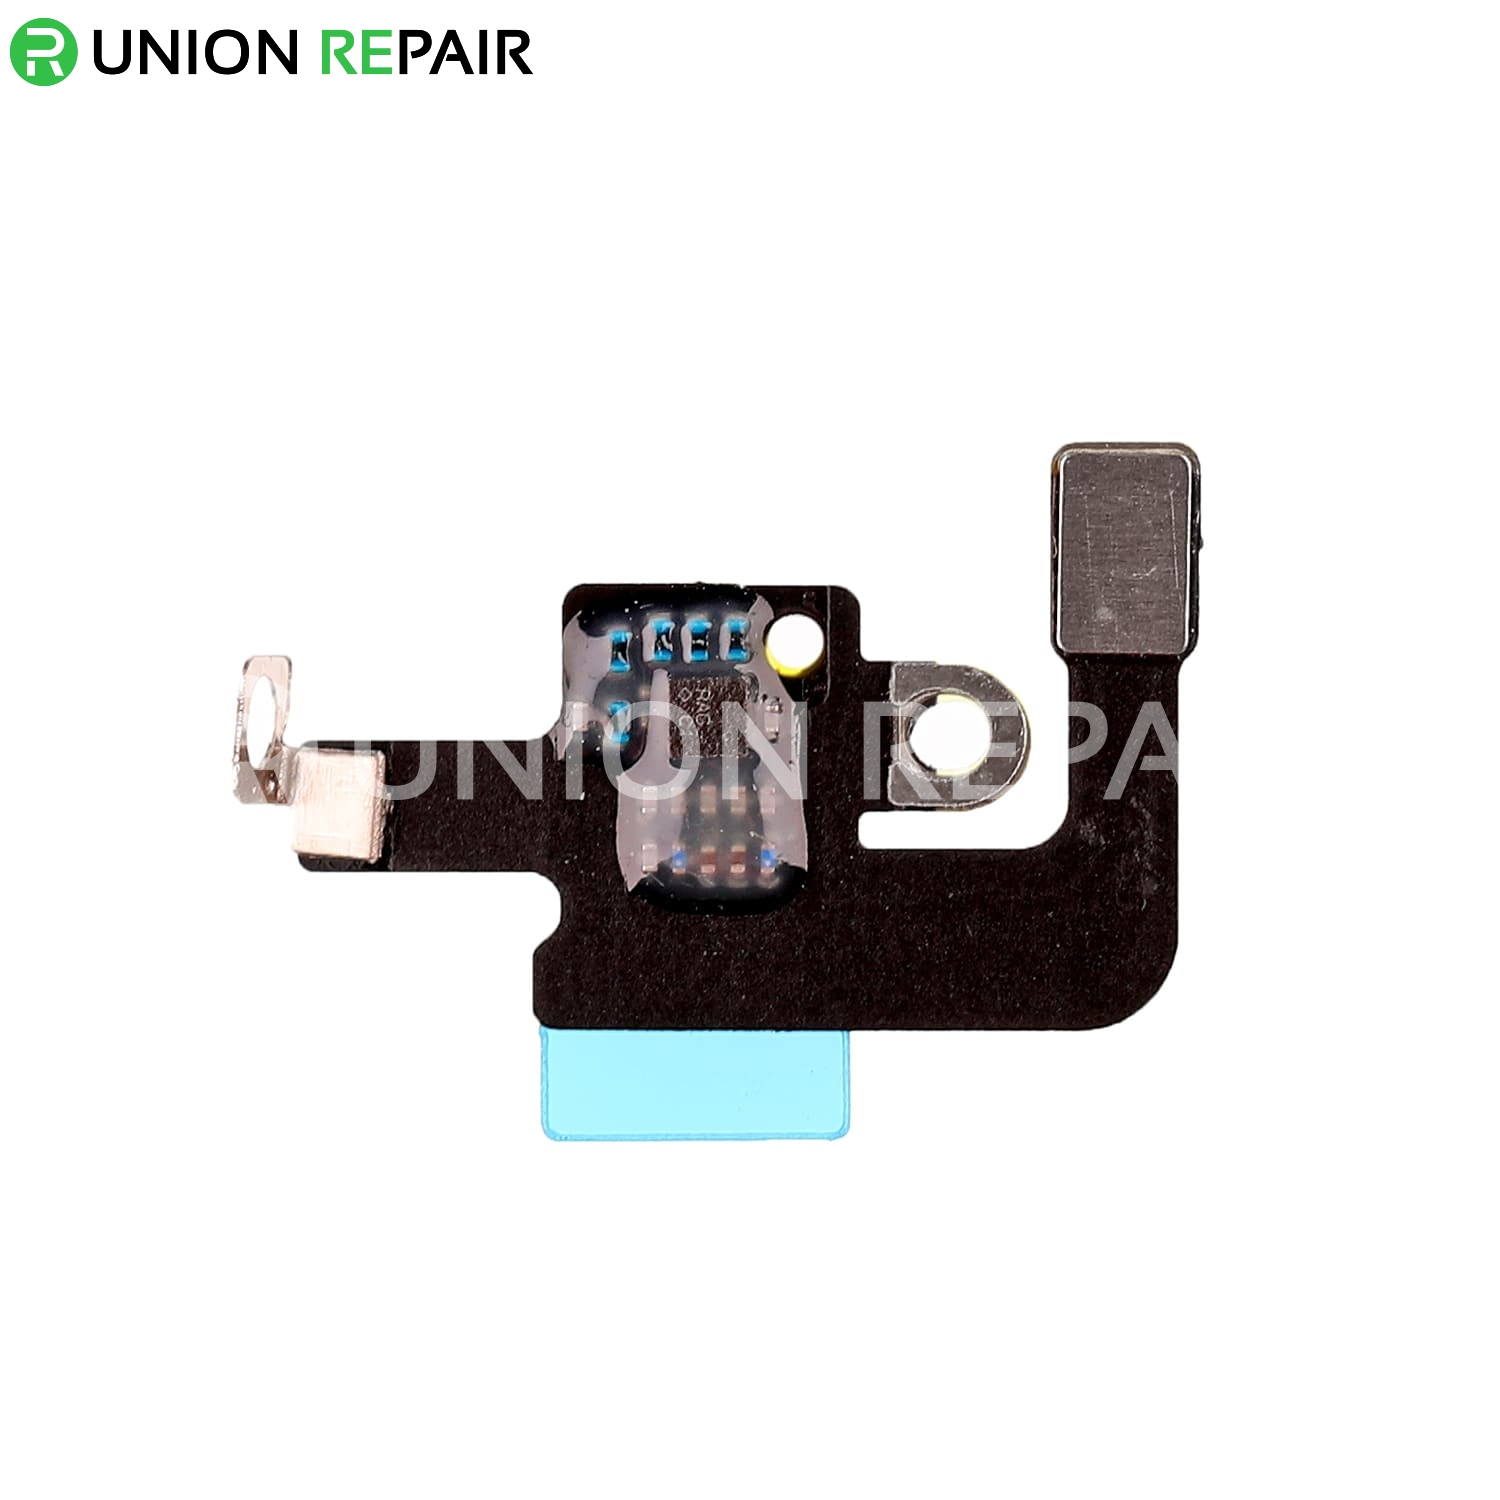 Replacement for iPhone 7 Plus WiFi Antenna Cable (Besides Rear Camera)